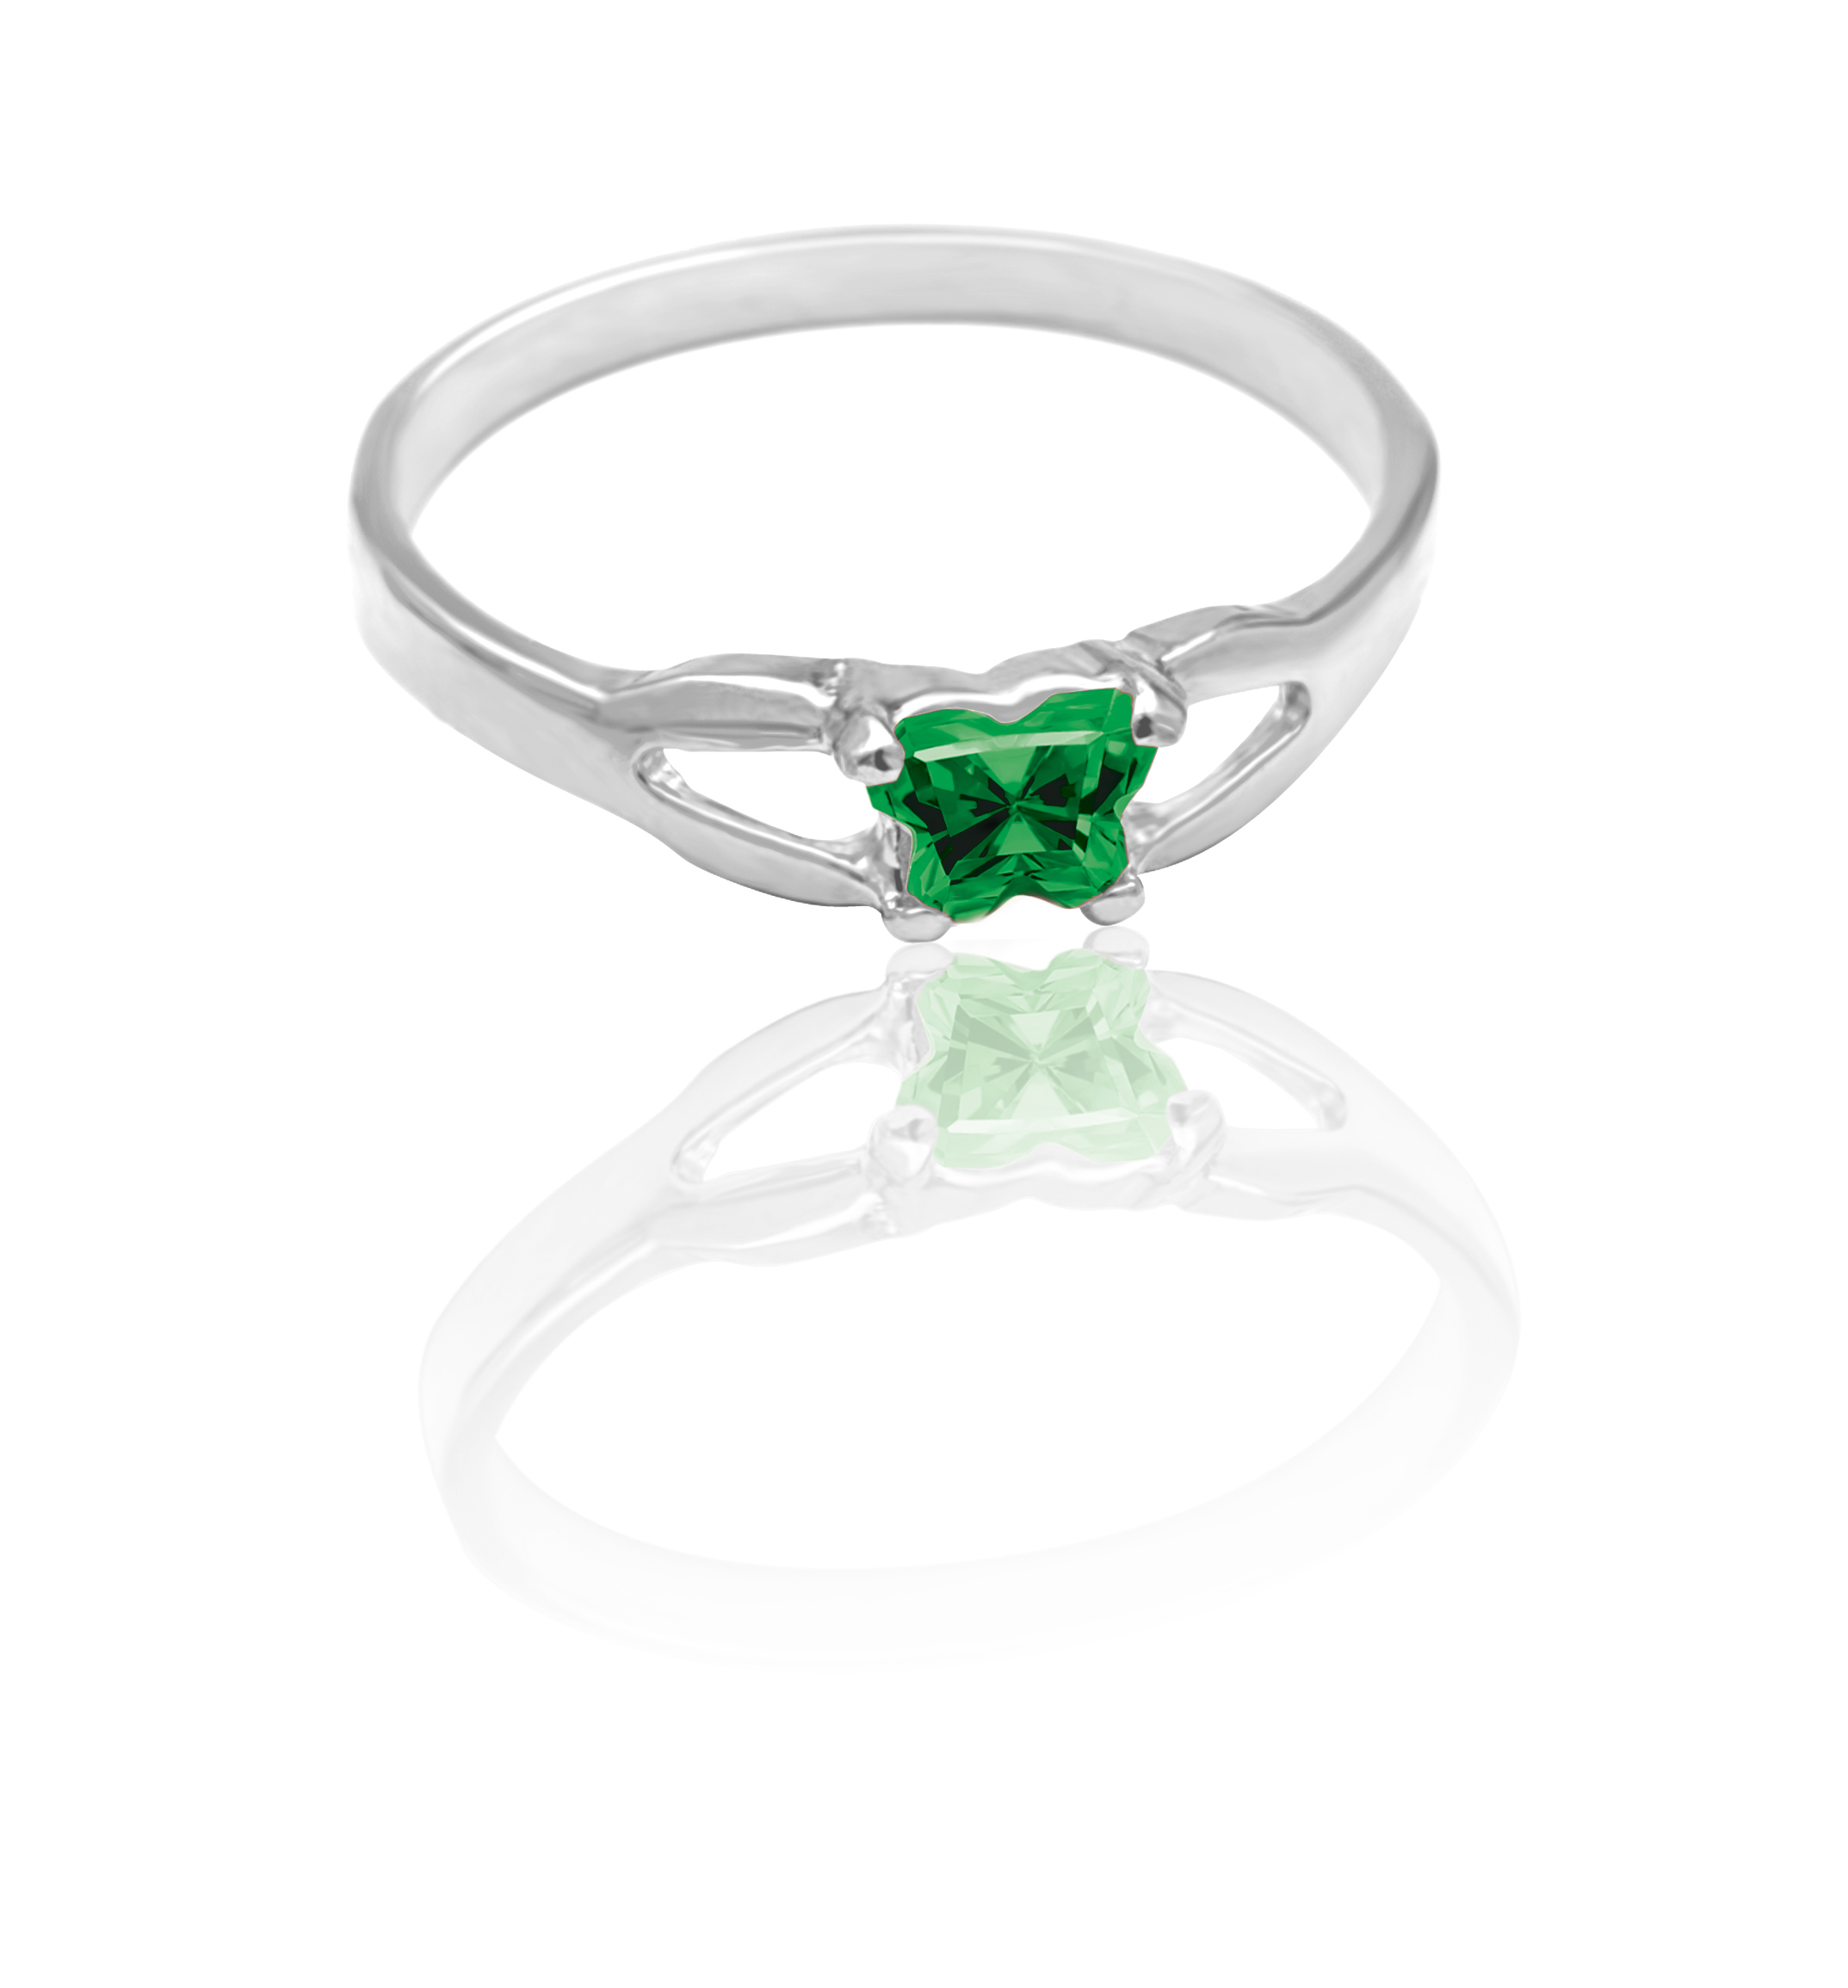 children ring in sterling silver with green cubic zirconia (month of May)*